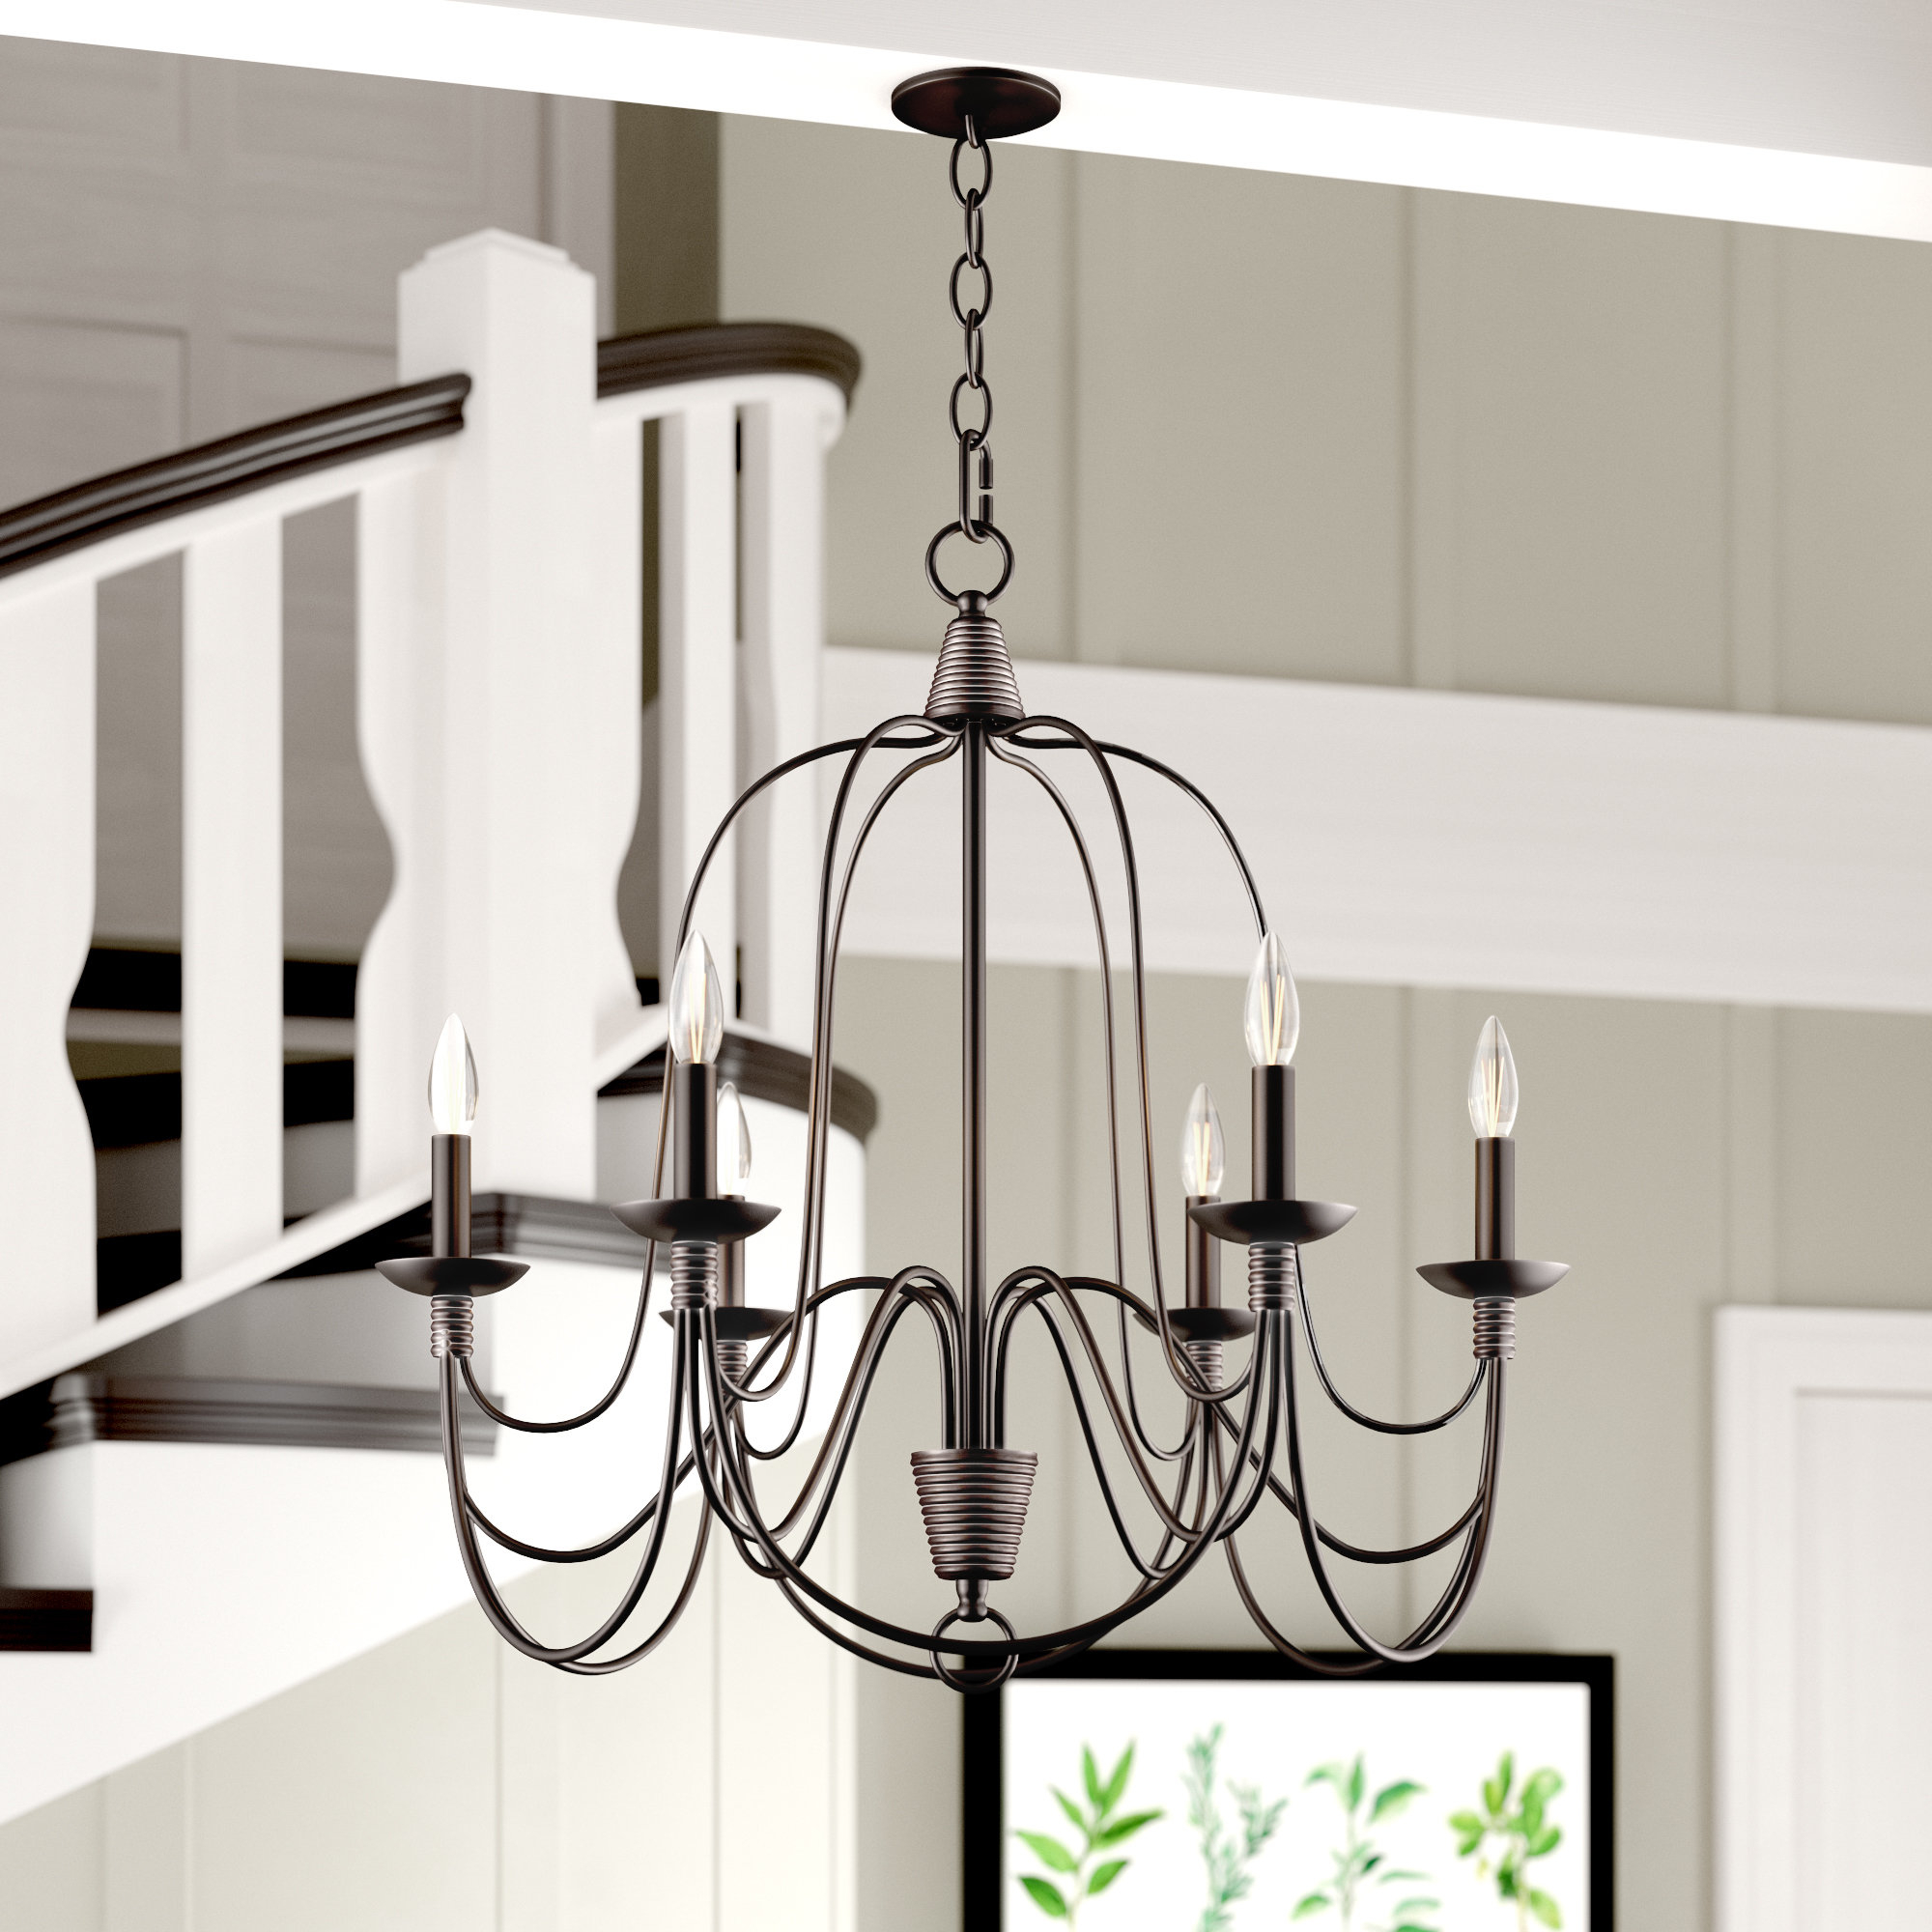 Crim Vintage 6-Light Chandelier in Watford 6-Light Candle Style Chandeliers (Image 5 of 30)